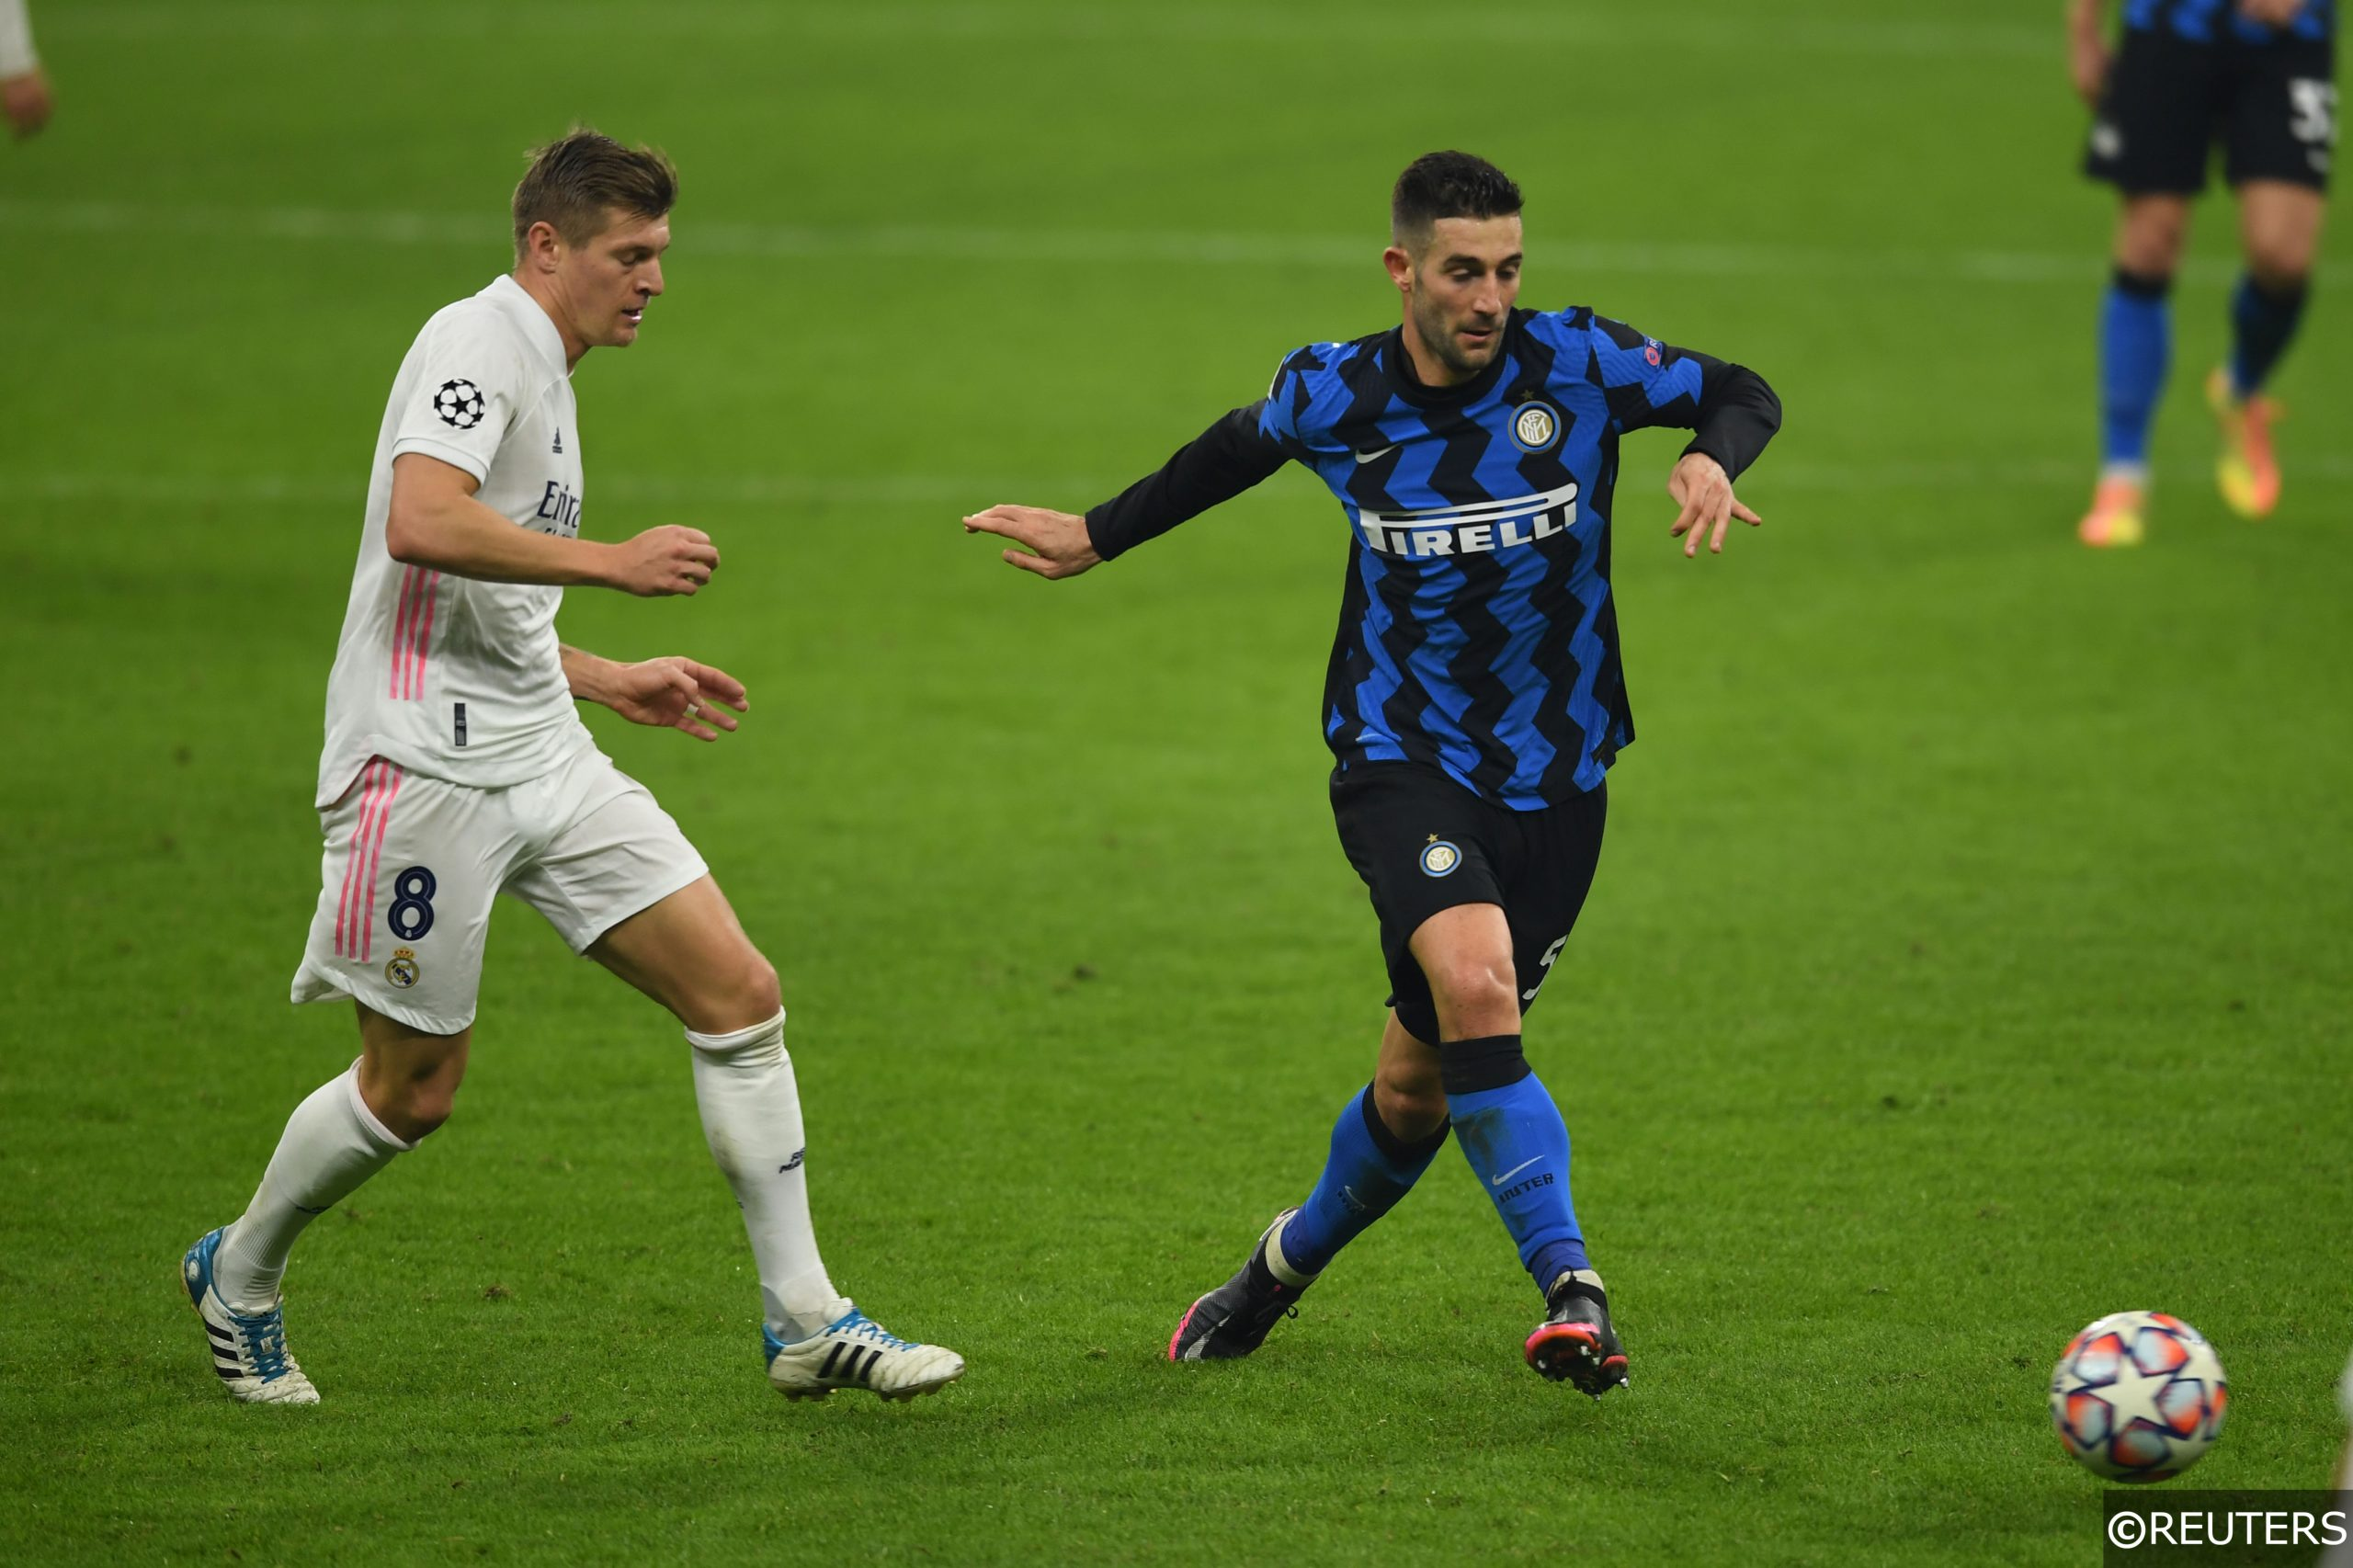 Roberto Gagliardini (Inter)Toni Kroos (Real Madrid) during the Uefa Champions League match between Inter 0-2 Real Madrid